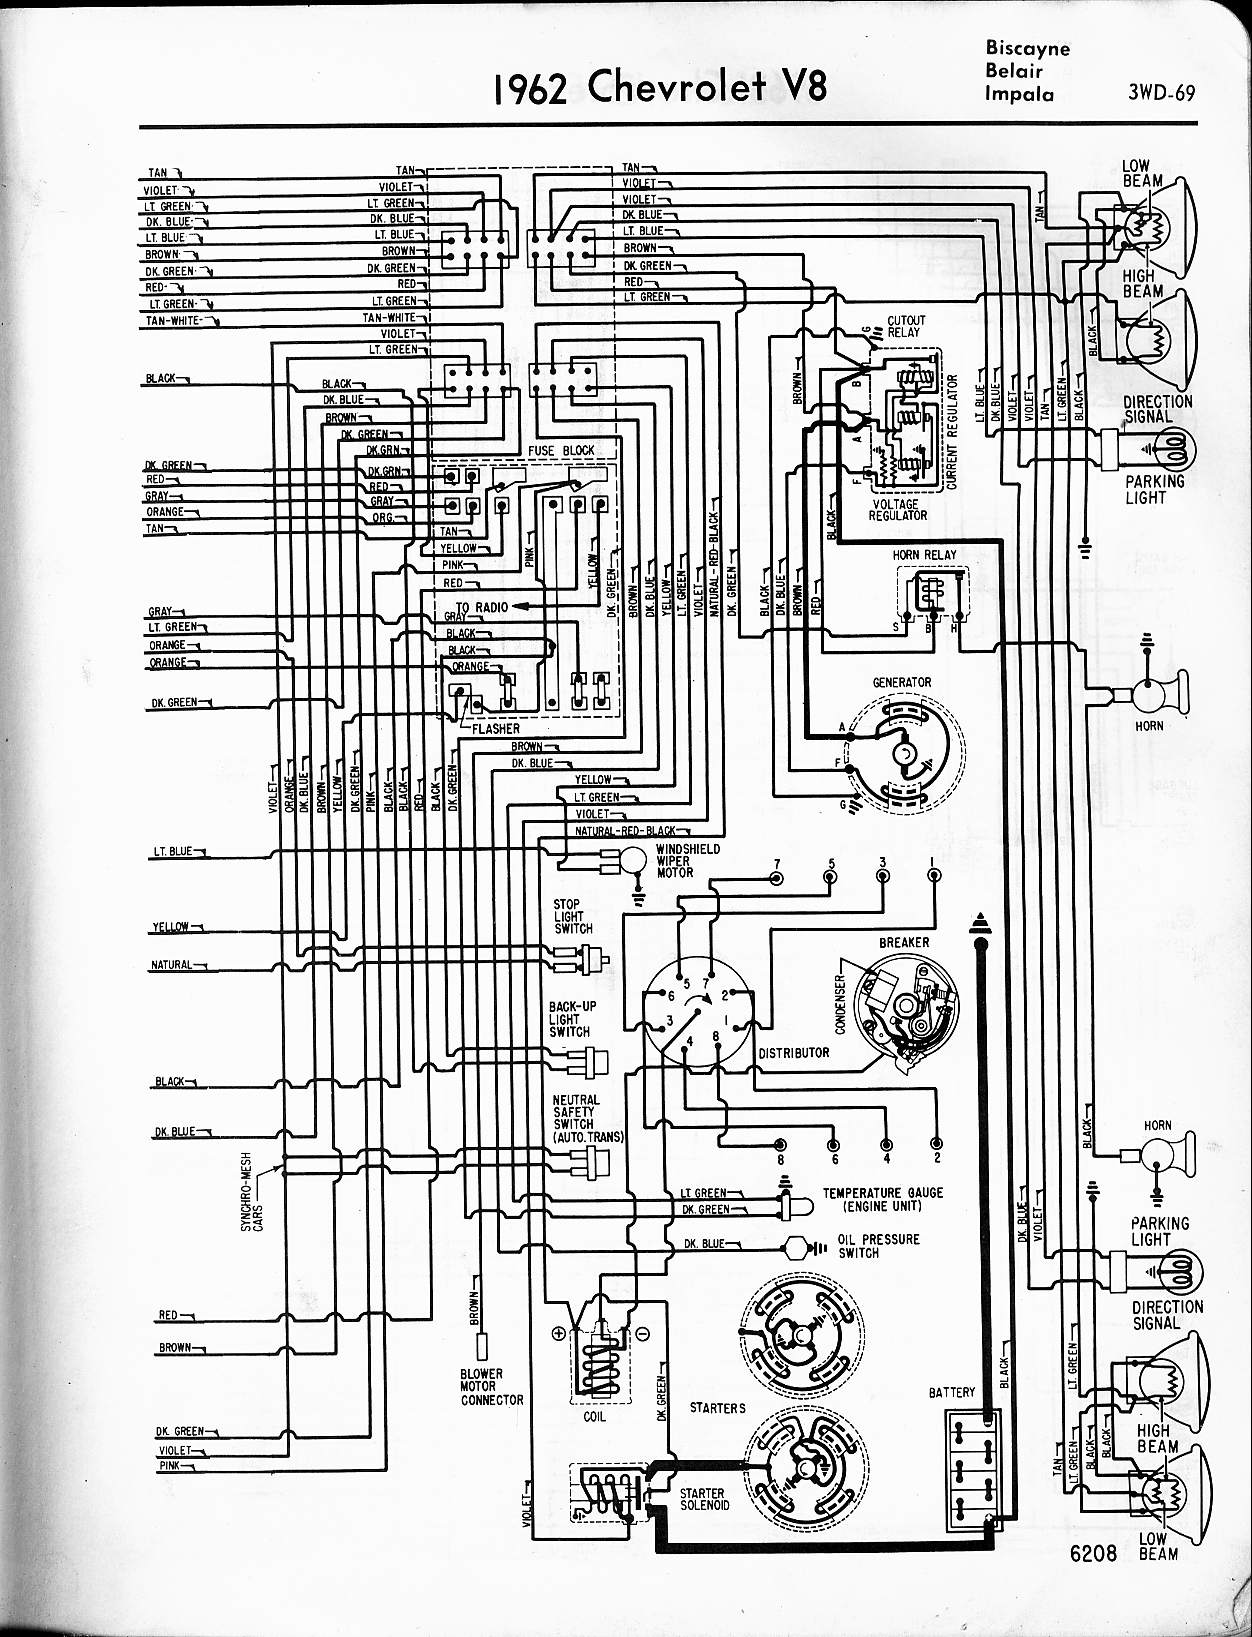 MWireChev62_3WD 069 1964 chevy impala wiring diagram 1964 chevy impala red \u2022 wiring 1962 impala wiring harness at eliteediting.co